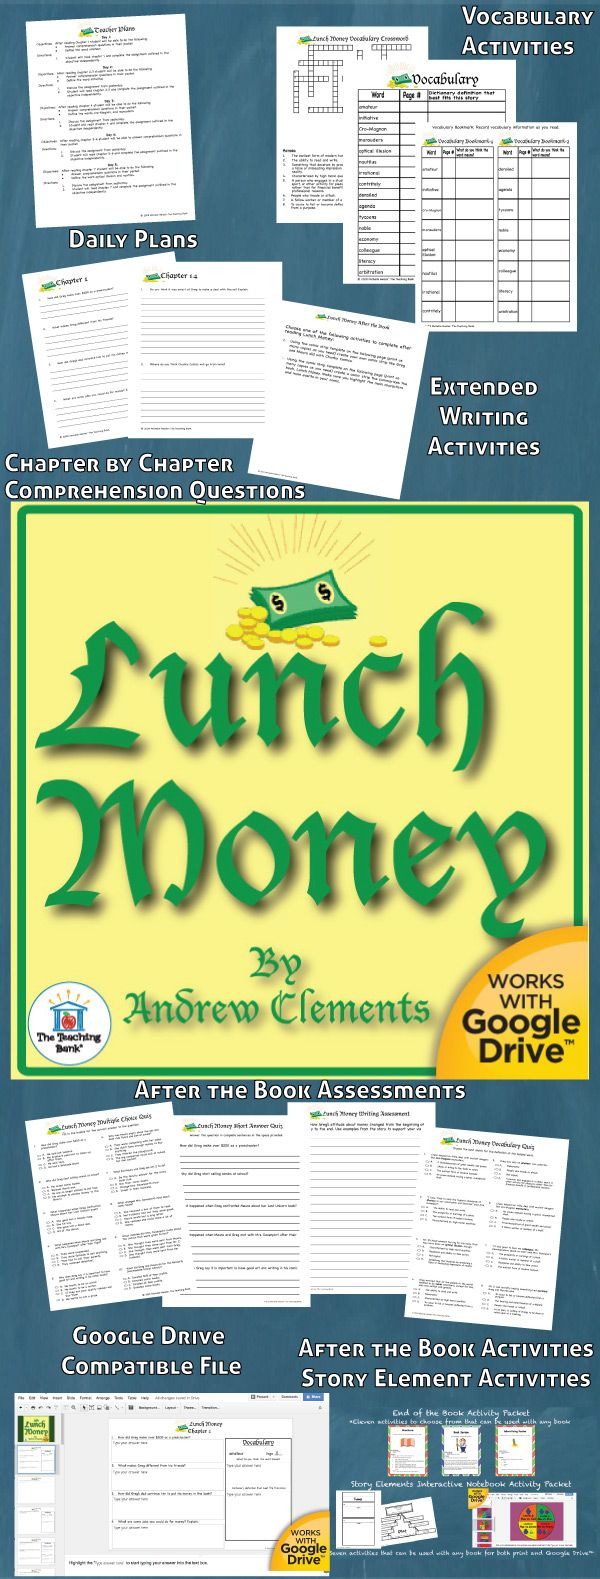 How To Eat Fried Worms, Film, Lunch Money Novel Study Is Amon Core  Standard Aligned Book Unit To Be Used With Lunch